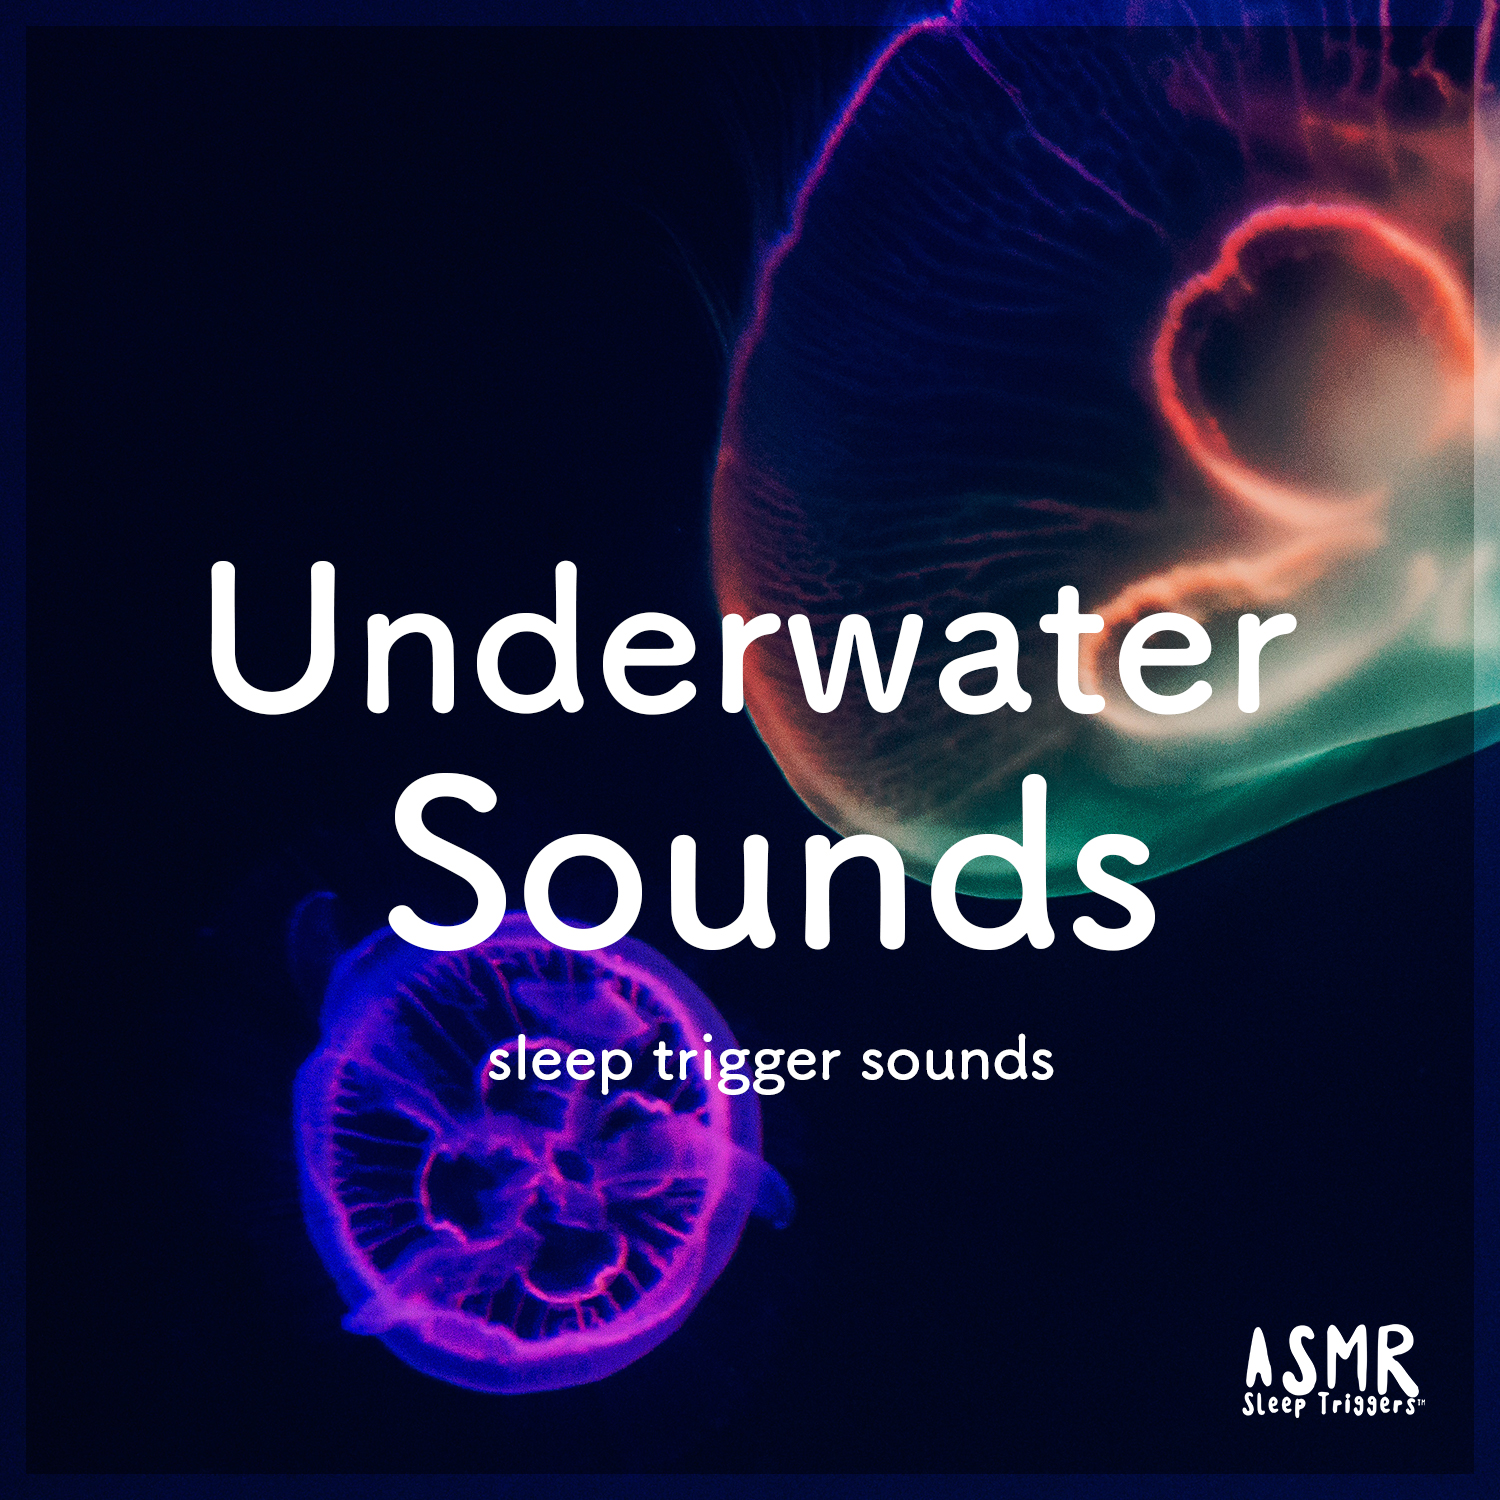 Underwater Sounds 02.jpg